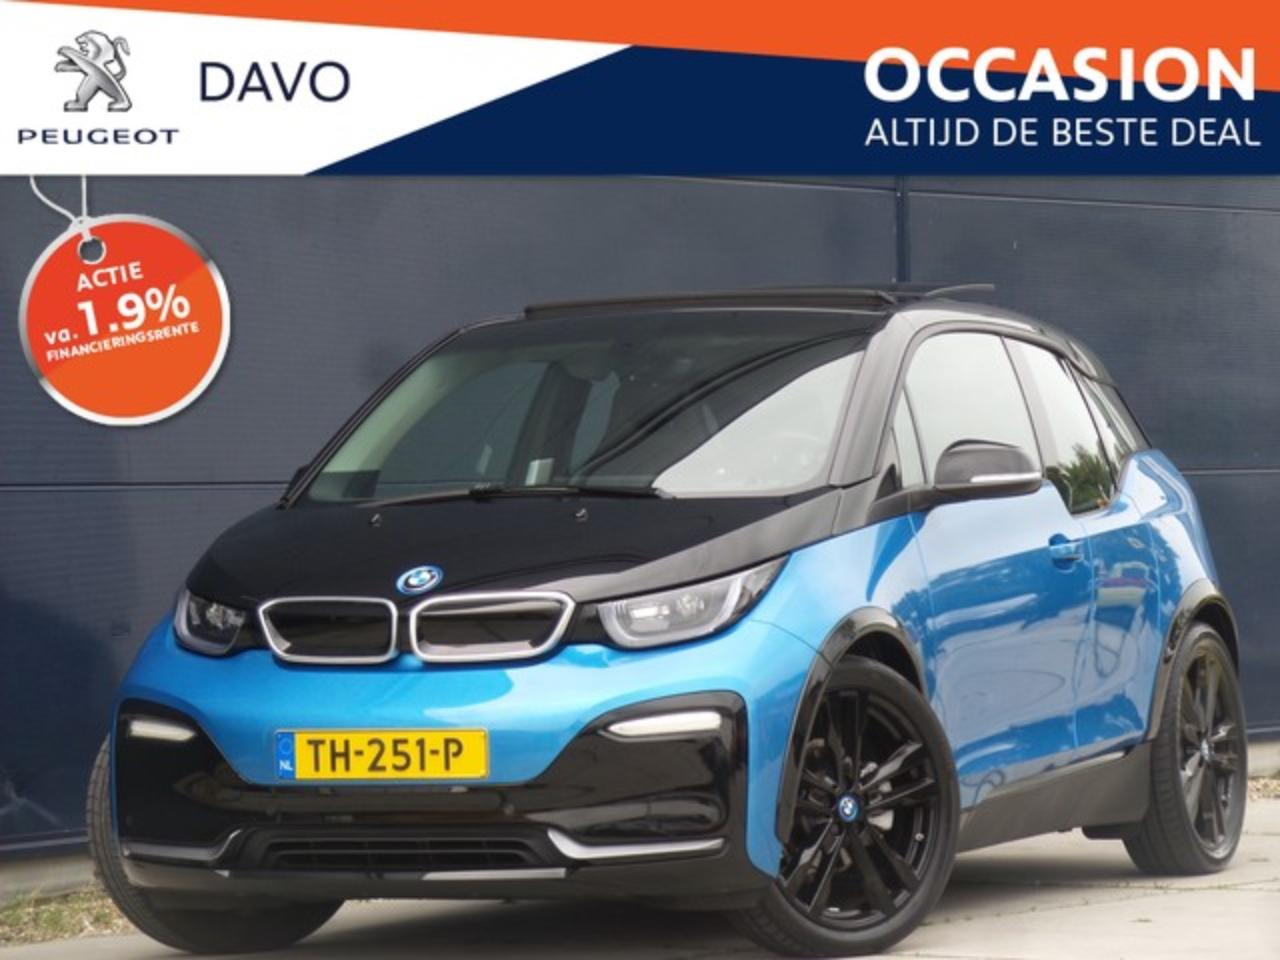 Bmw i3 S iPerformance 94Ah 33 kWh EX BTW I Panorama I Led